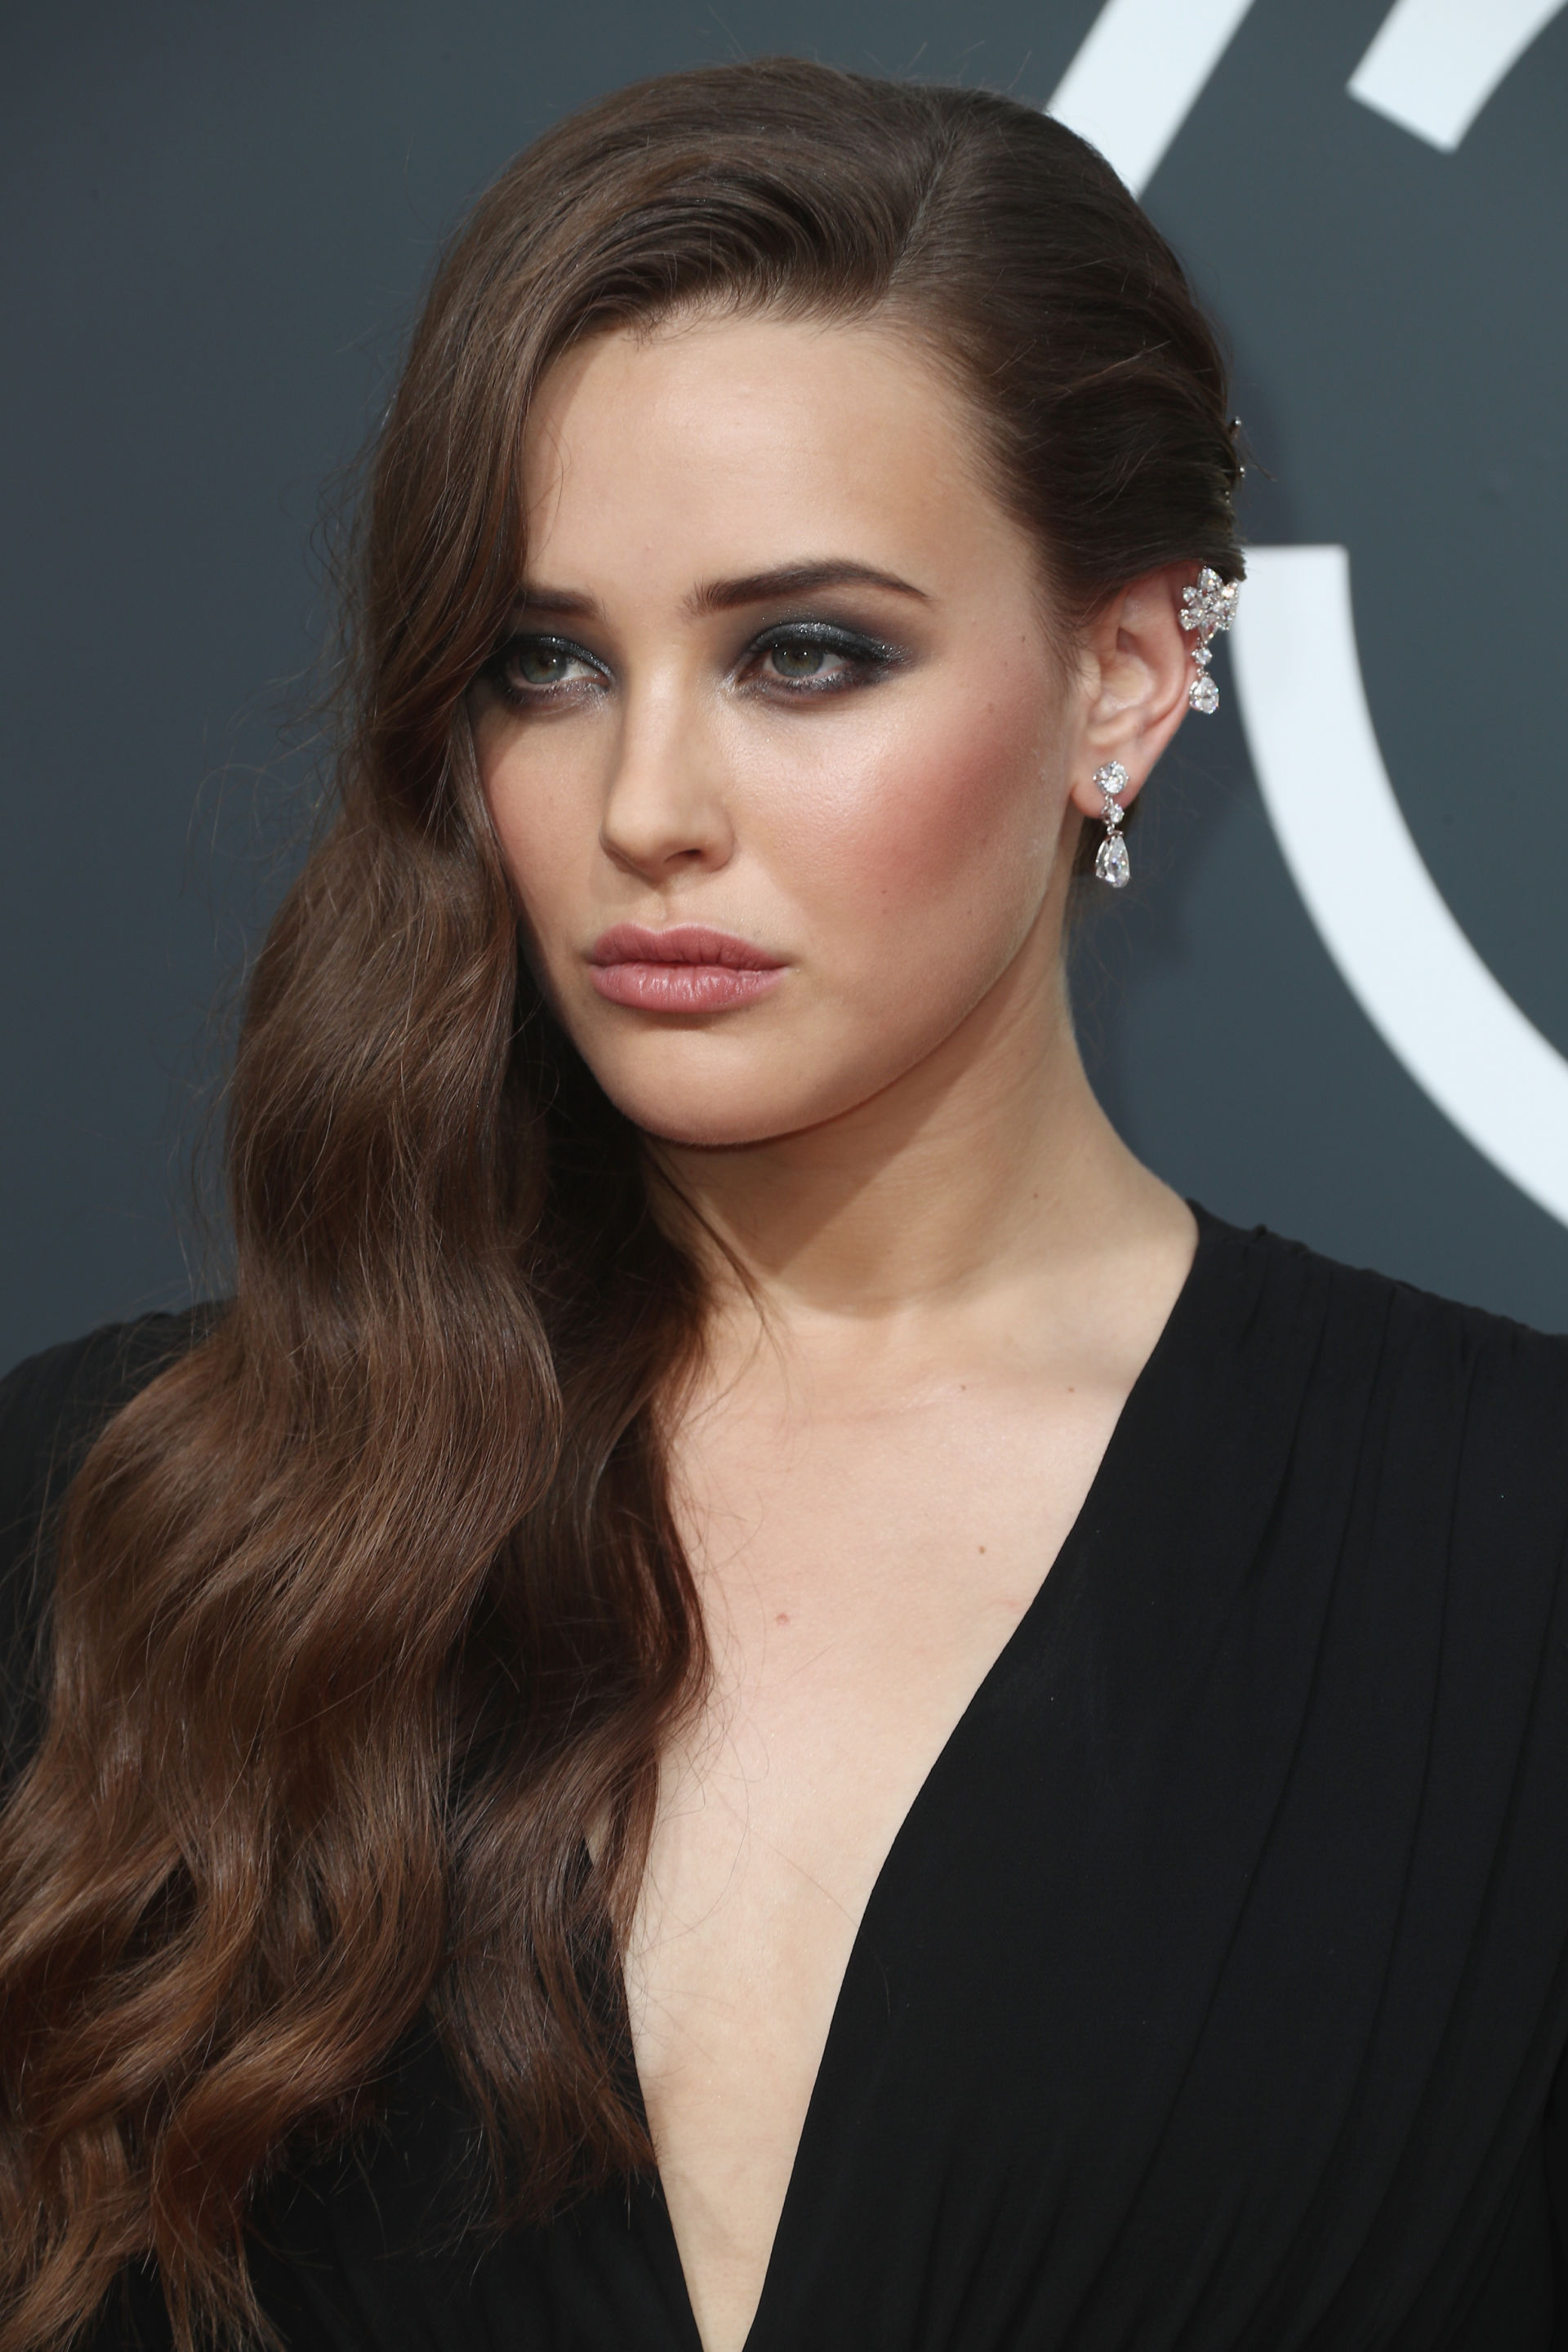 Katherine LangfordGolden Globes - Before we talk about this makeup look let's first discuss Katherine Langford's skin. So clear, so plump and bouncy, literal goals. She is a perfect example why skincare should always come first to makeup because when you have good skin makeup just enhances that, rather than trying to cover it up. Okay now let's talk about the makeup. I love this glittery smokey eye paired with the rose tone blush and lip. It makes it a bit more approachable and less scary to recreate. I'm never dip into blacks or greys but this look is giving me so much motivation to finally try it out.